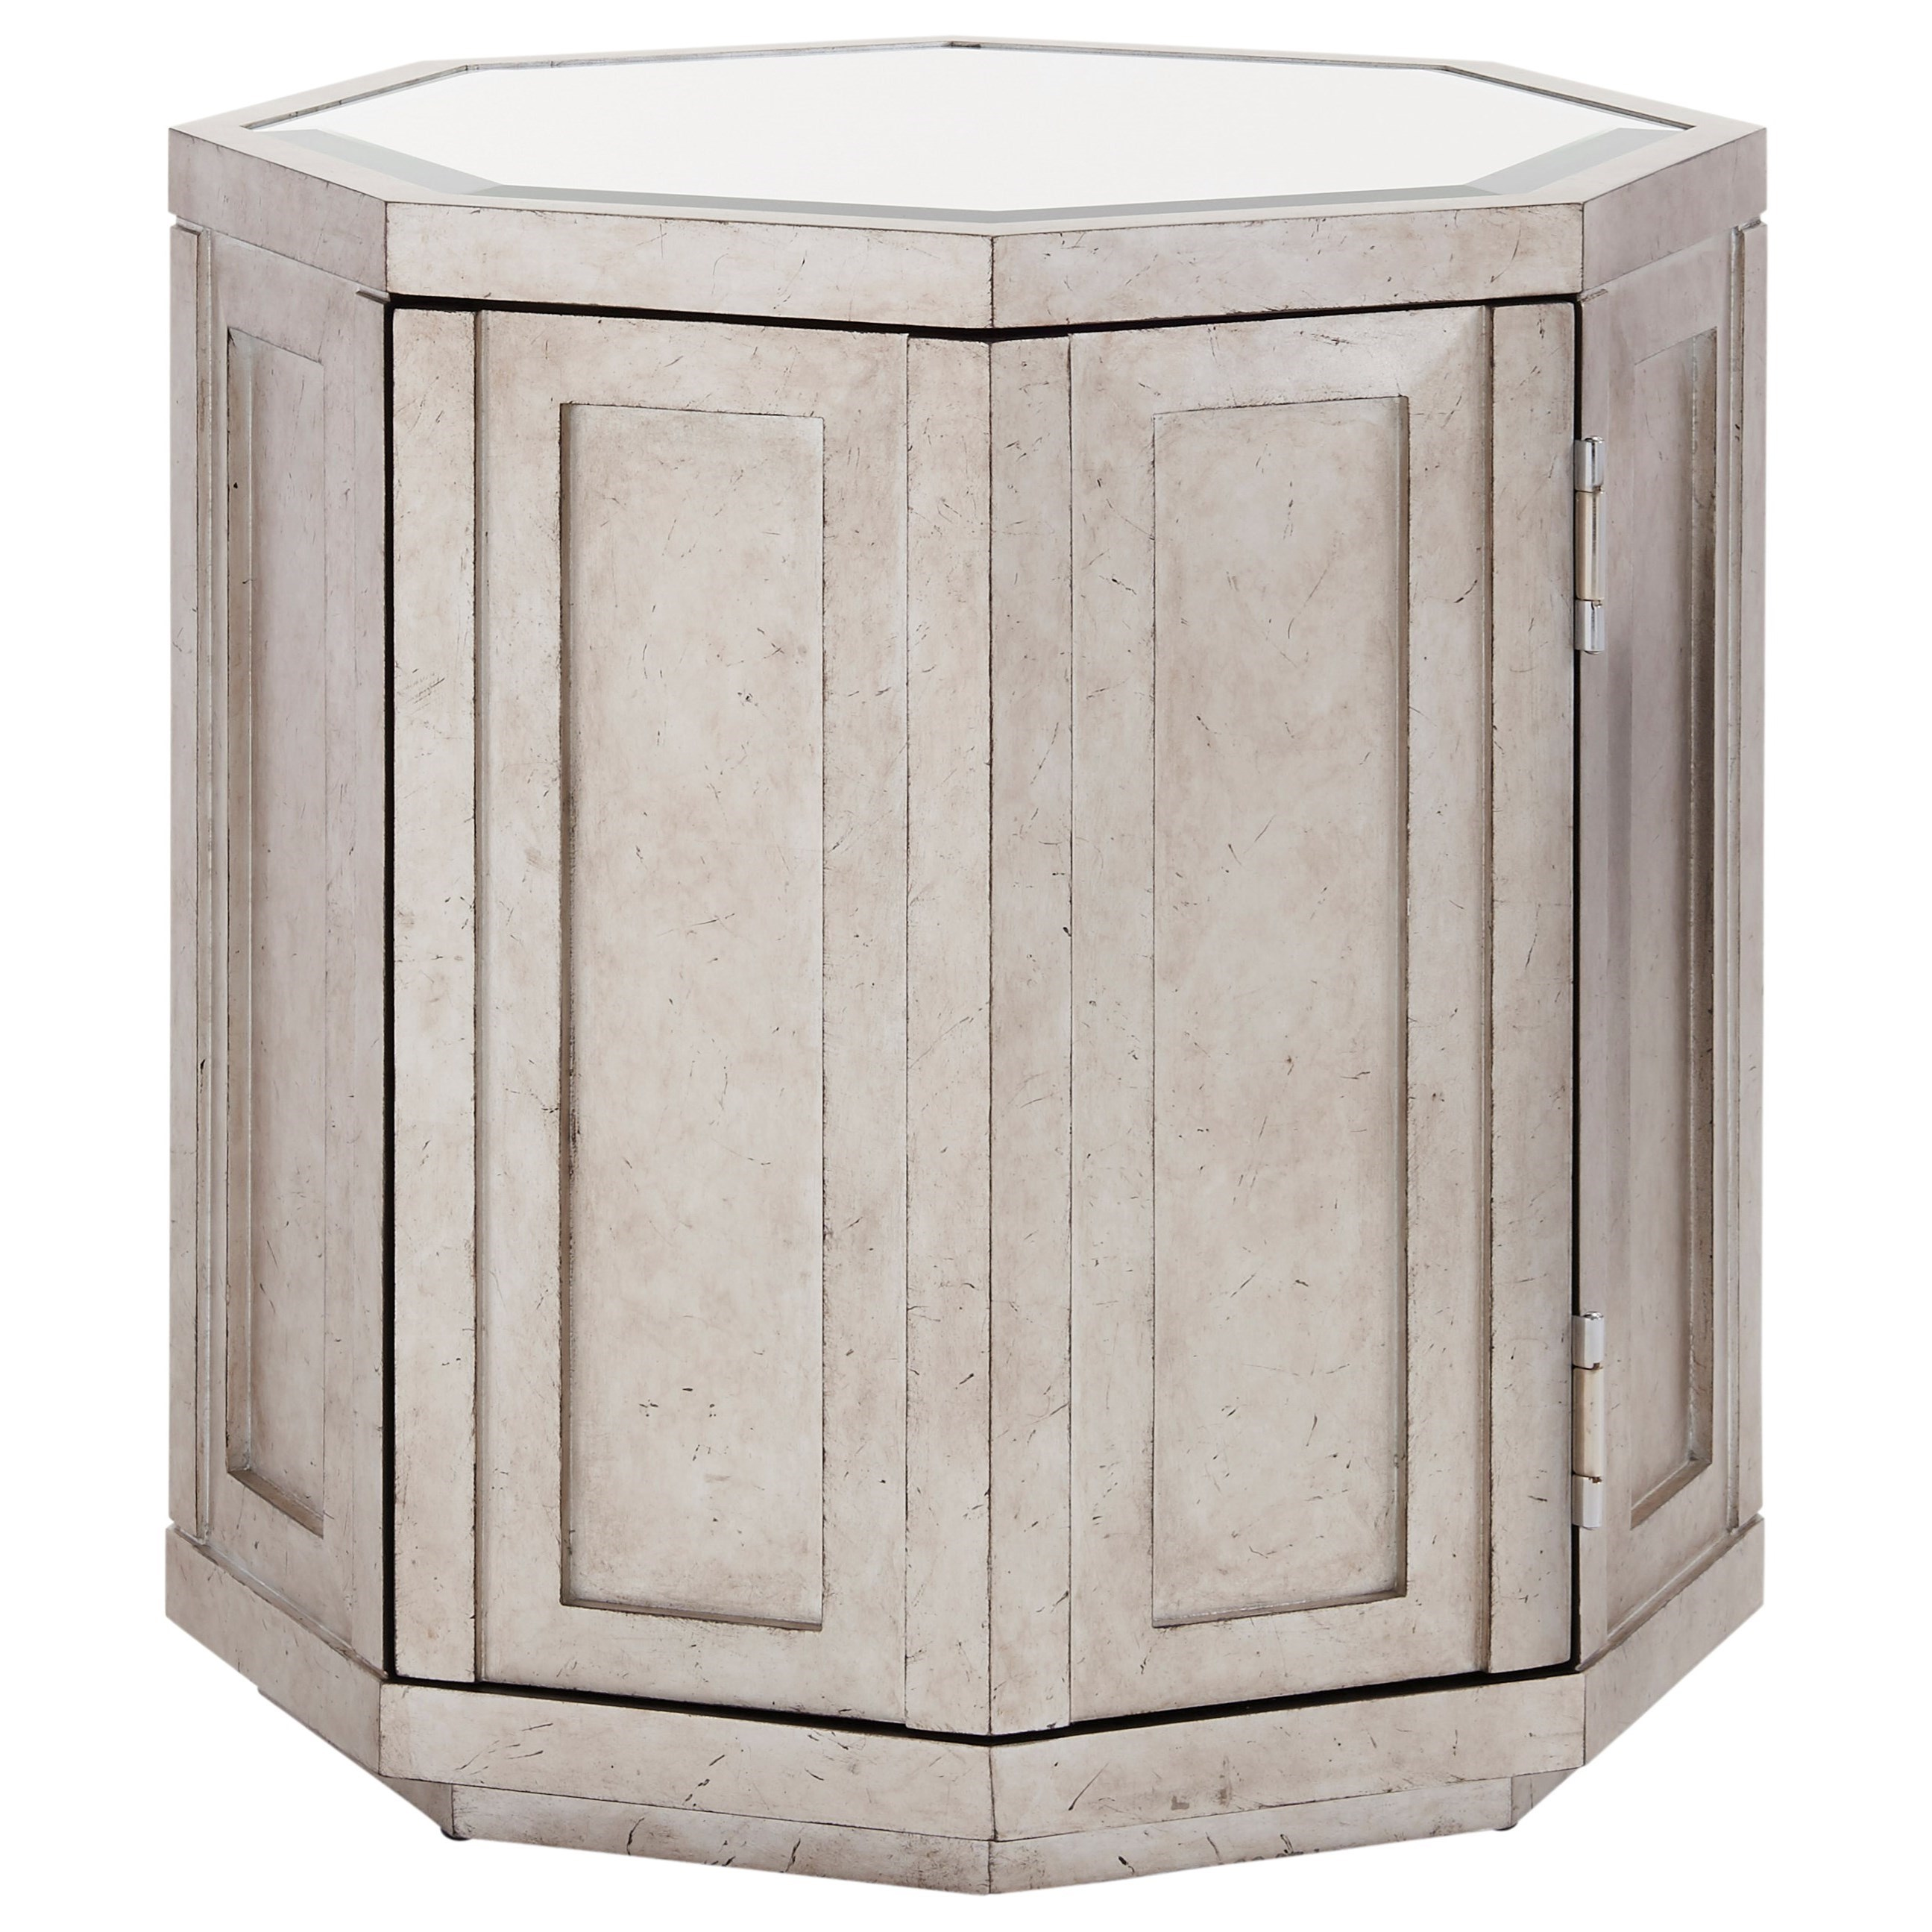 Ariana Rochelle Octagonal Storage Table by Lexington at Baer's Furniture